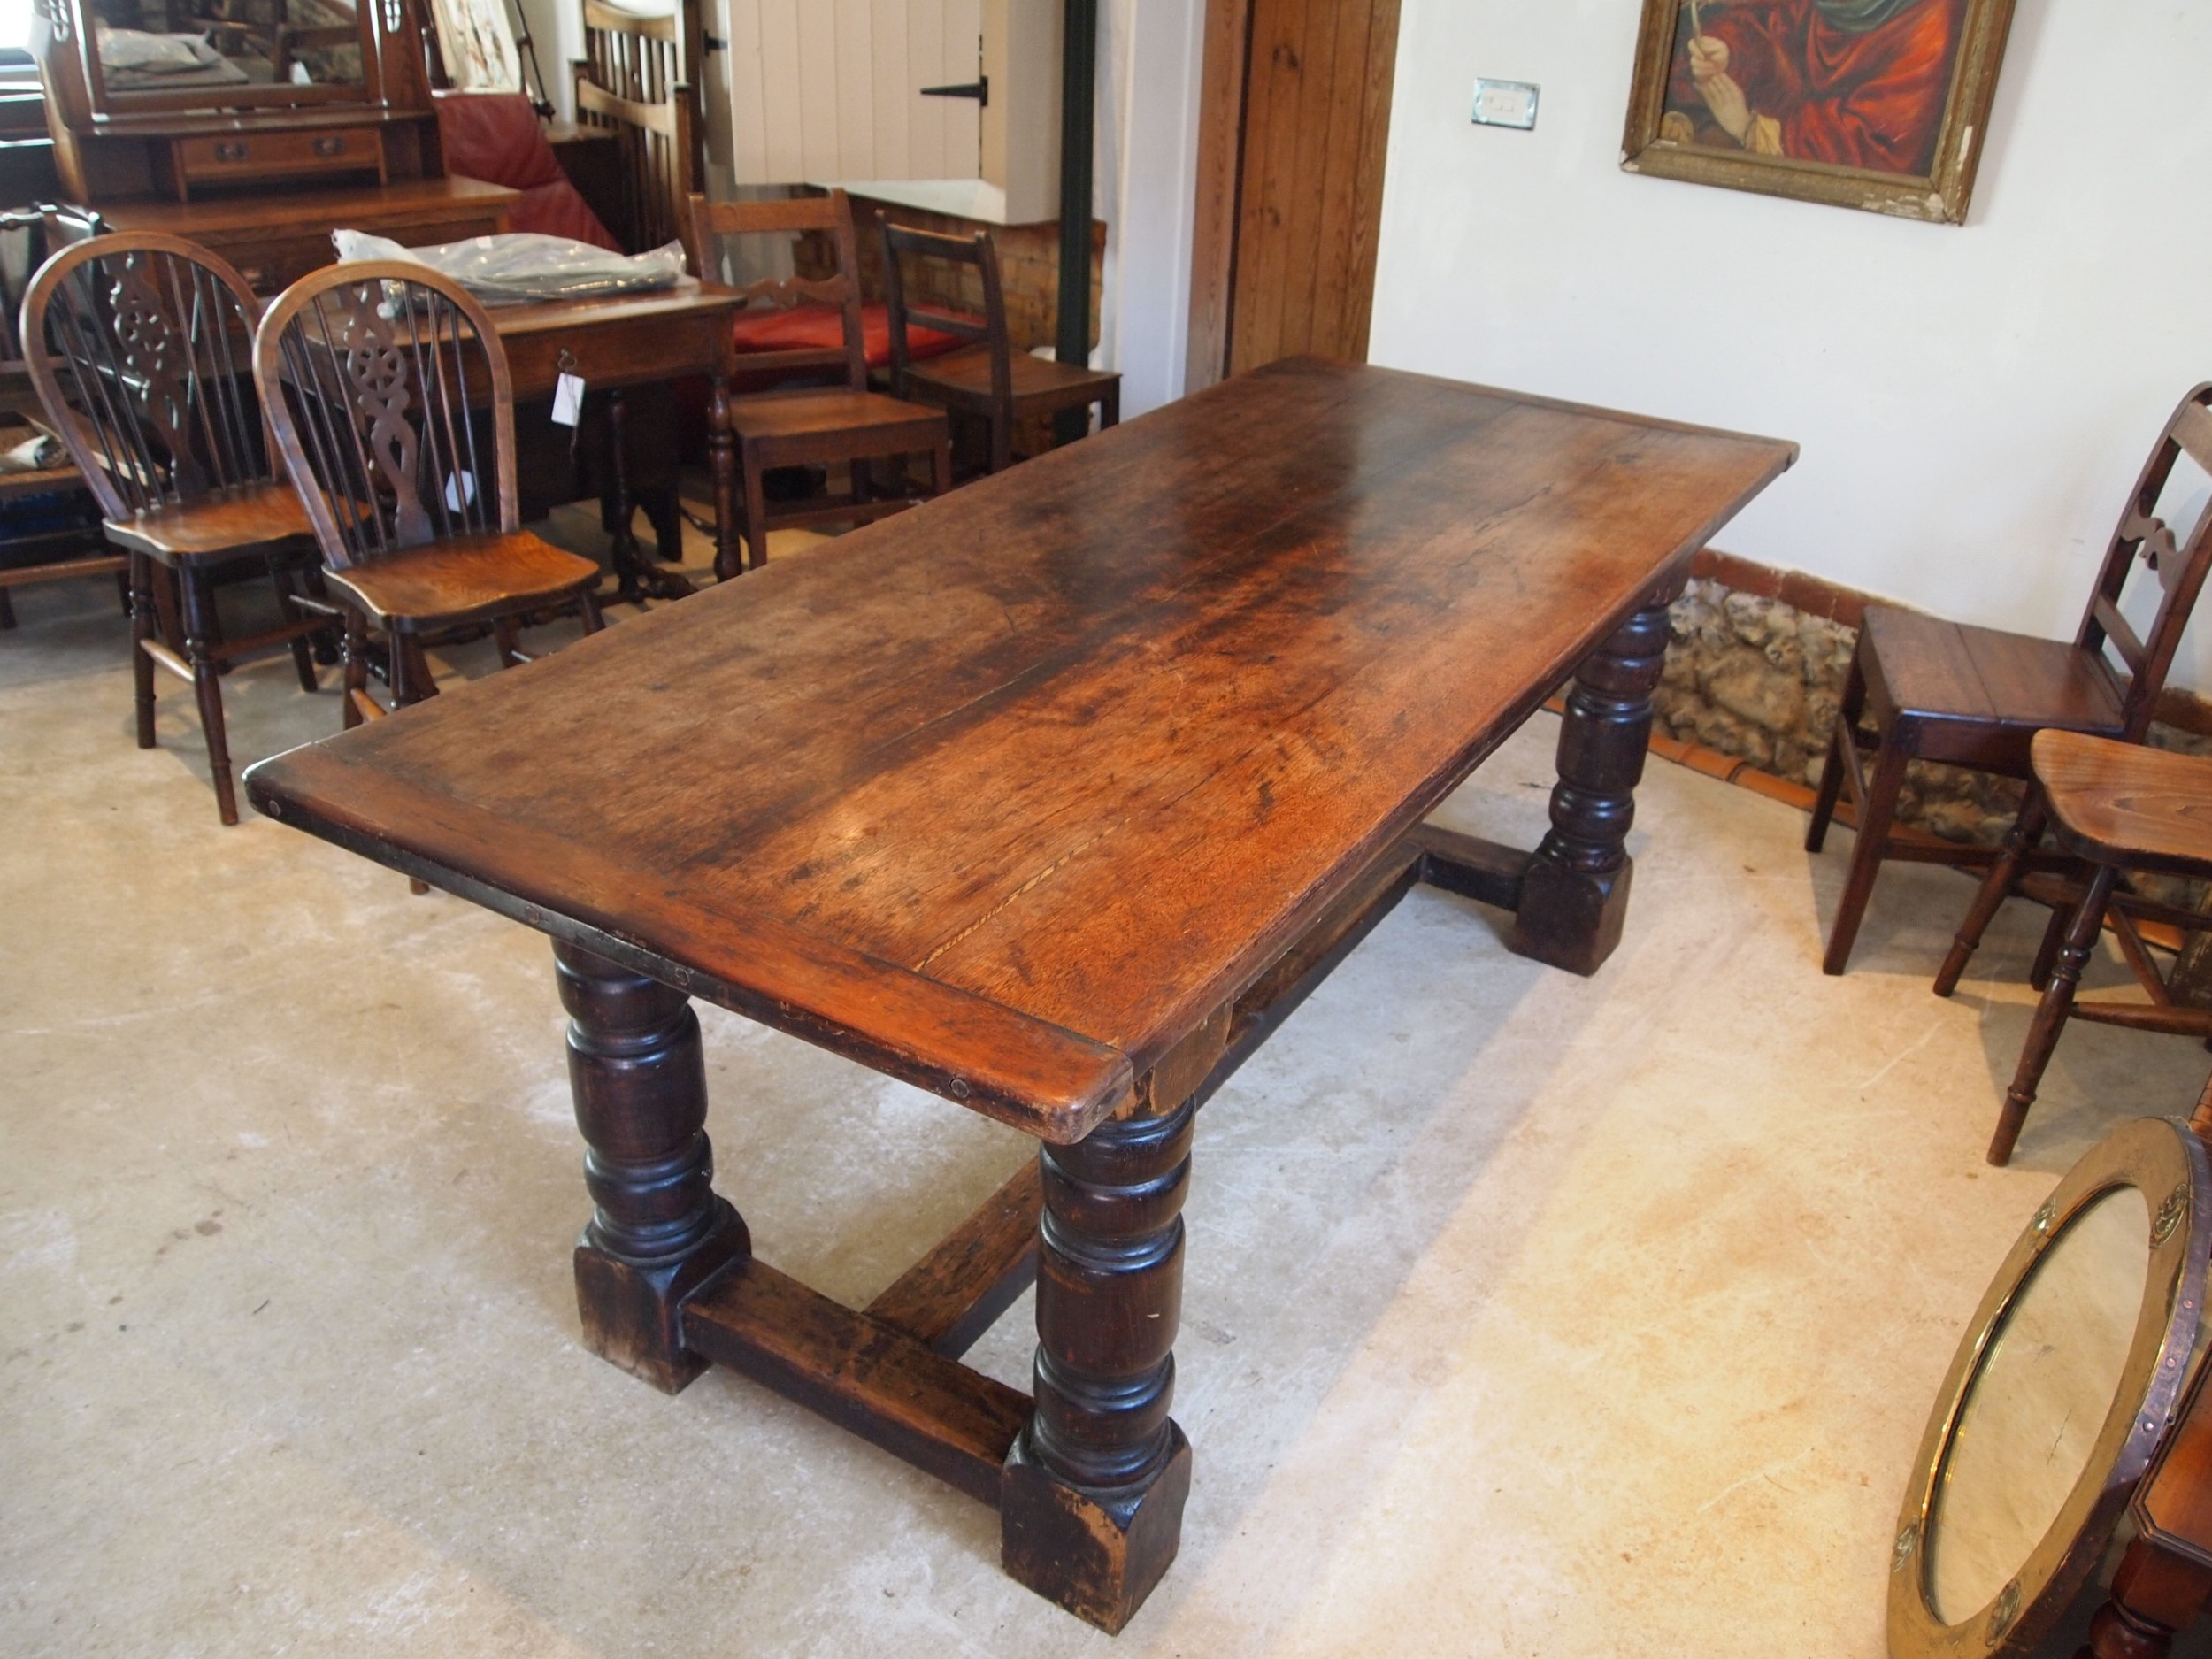 table refectory dining 17th century style oak and walnut c1900